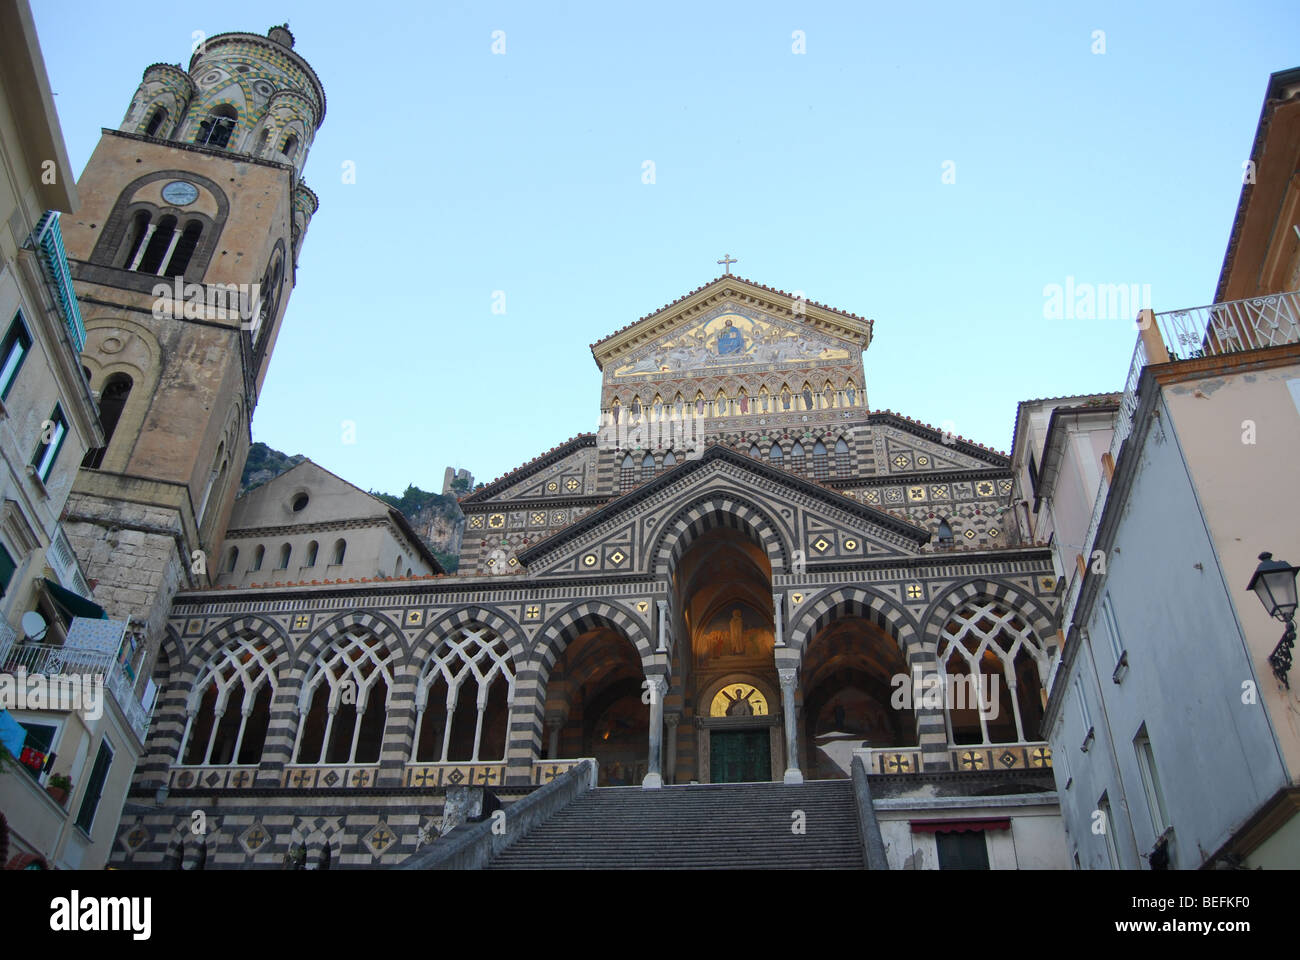 Amalfi town in Italy - 9th century cathedral - Stock Image